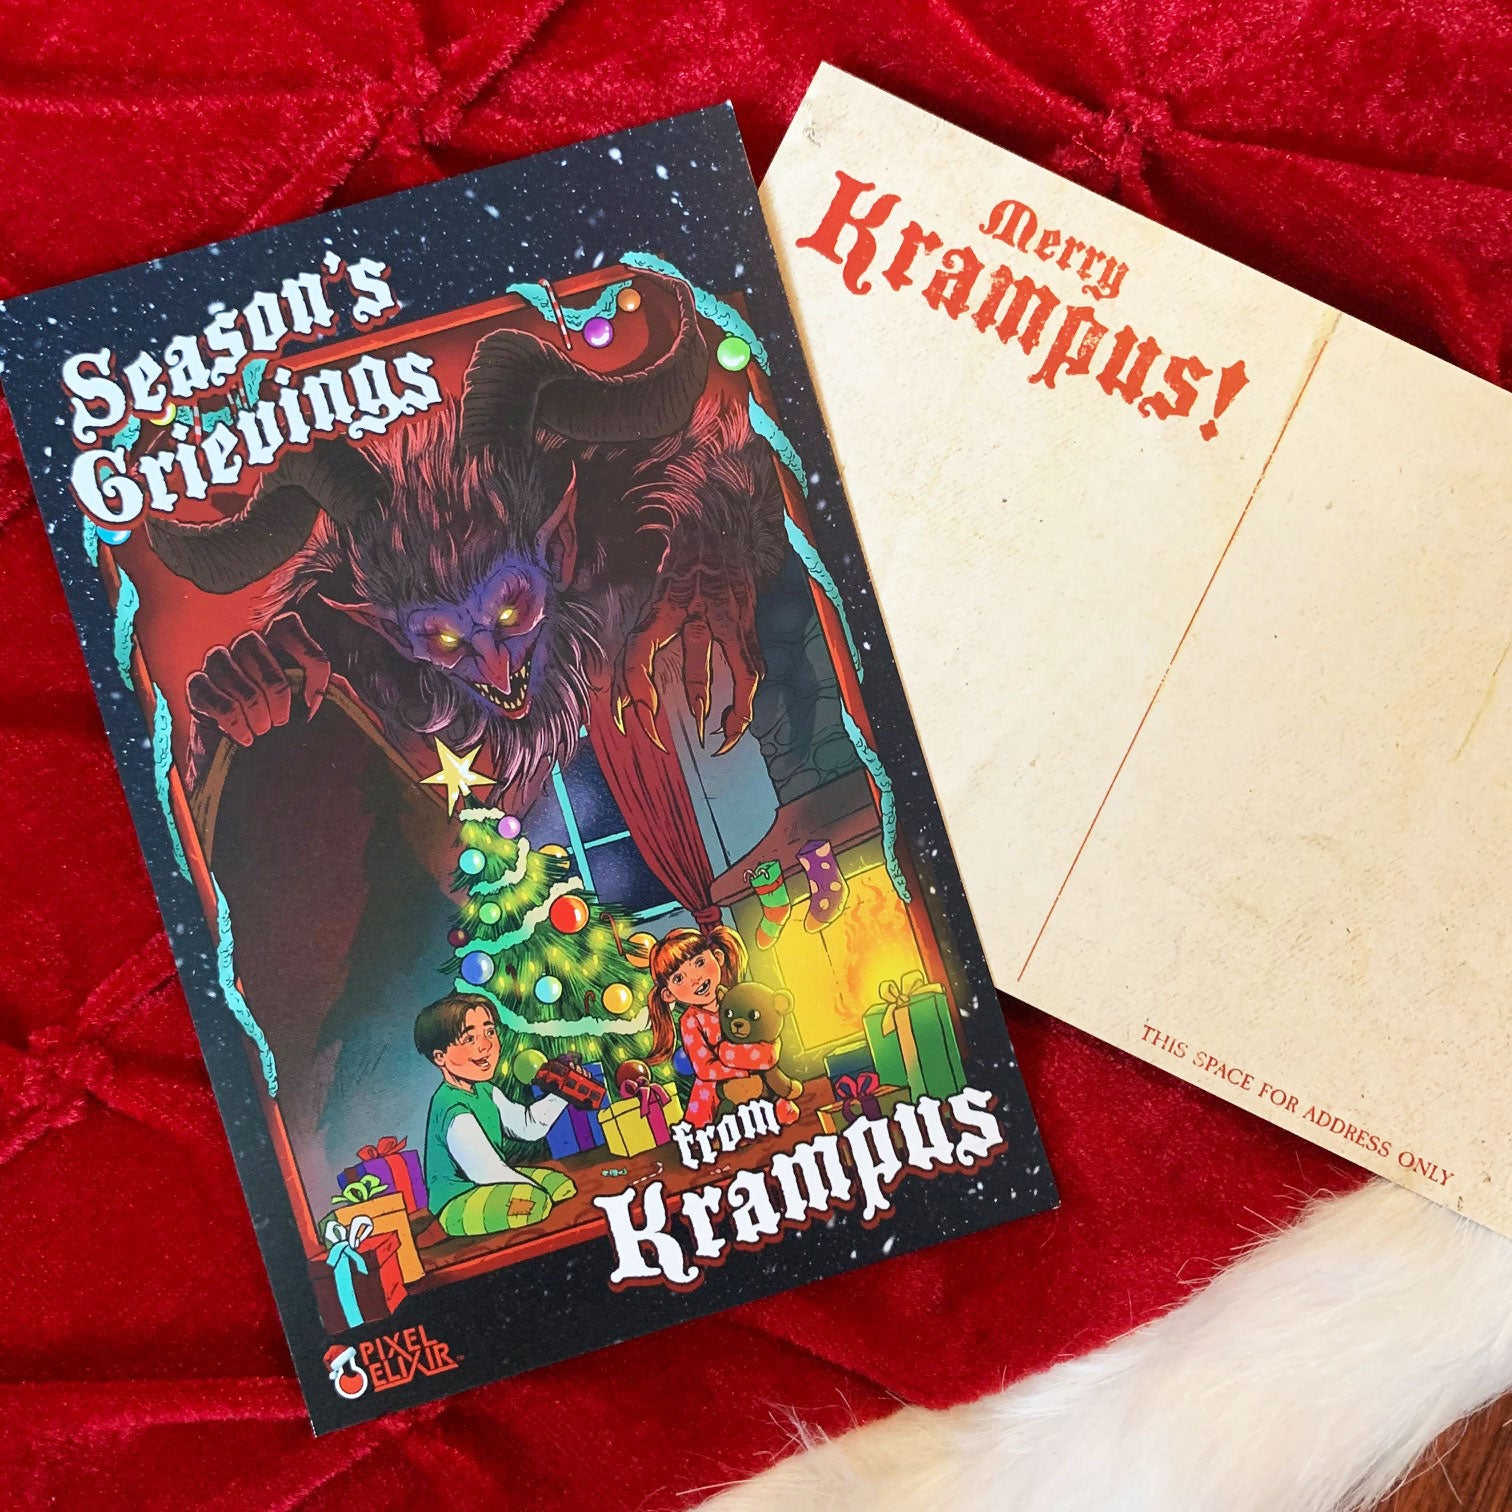 Season's Grievings From Krampus Postcard